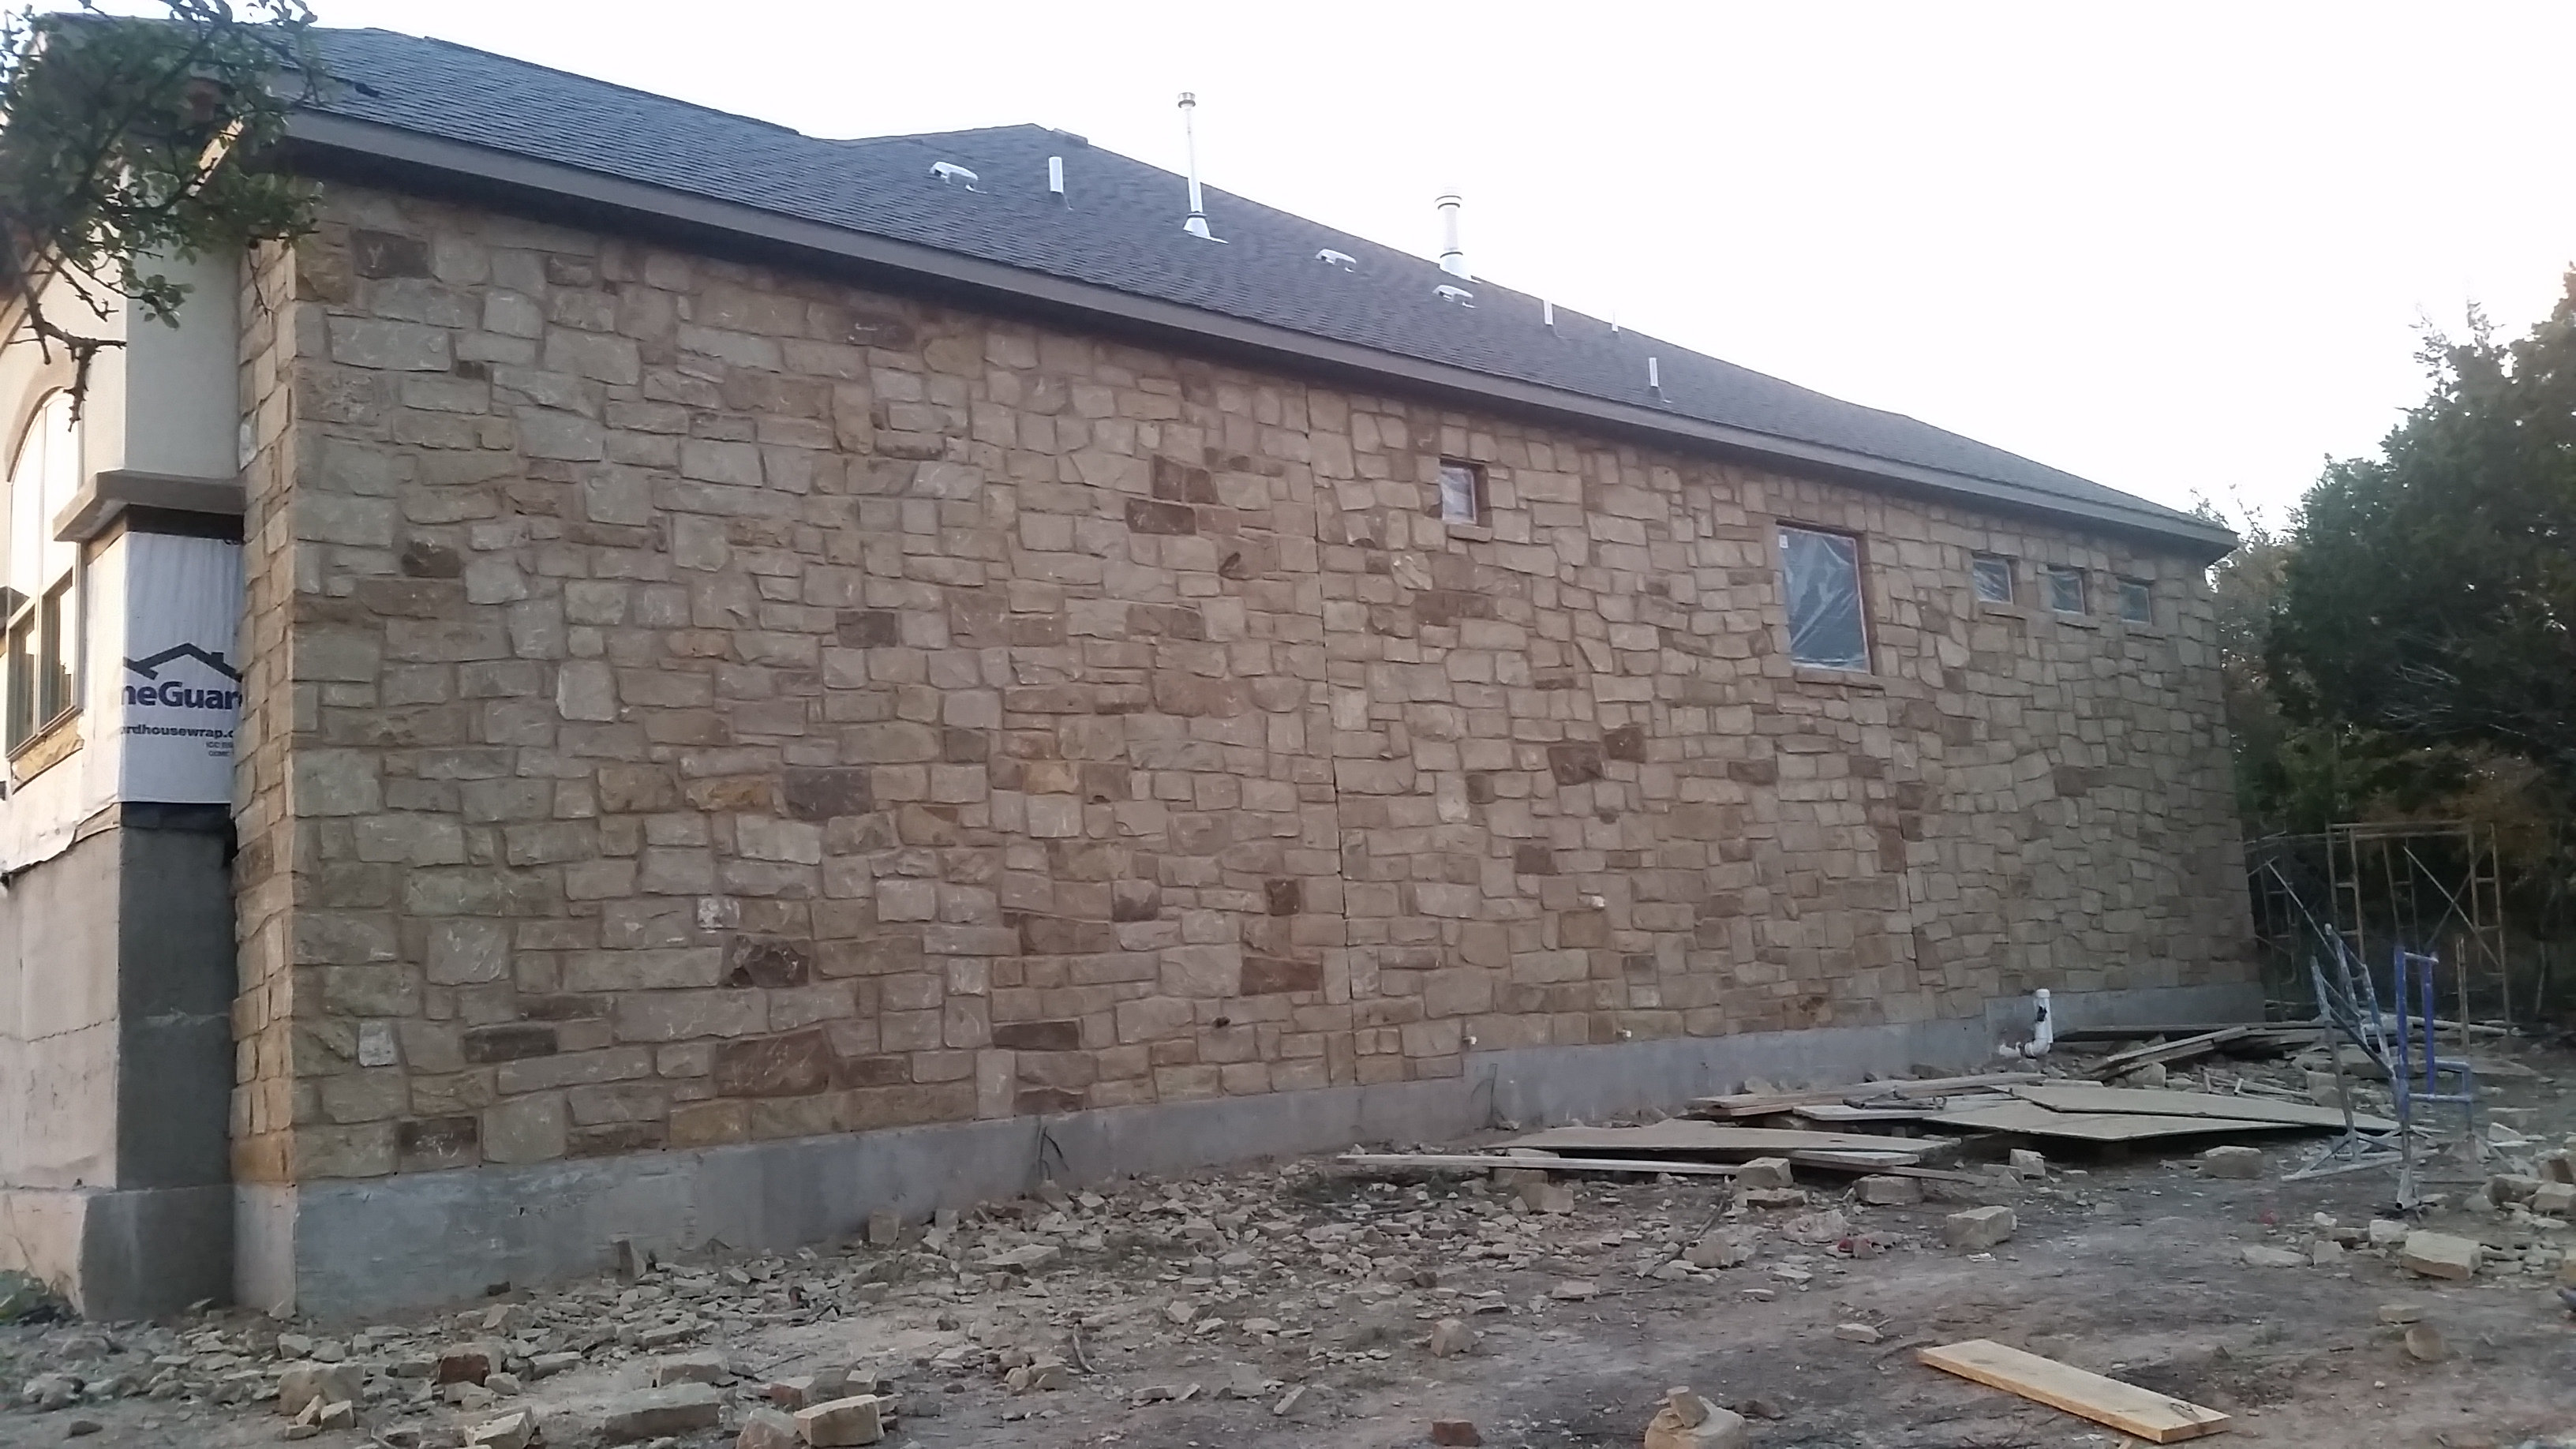 New Stone Work - Your honest opinion please!-east-wall.jpg